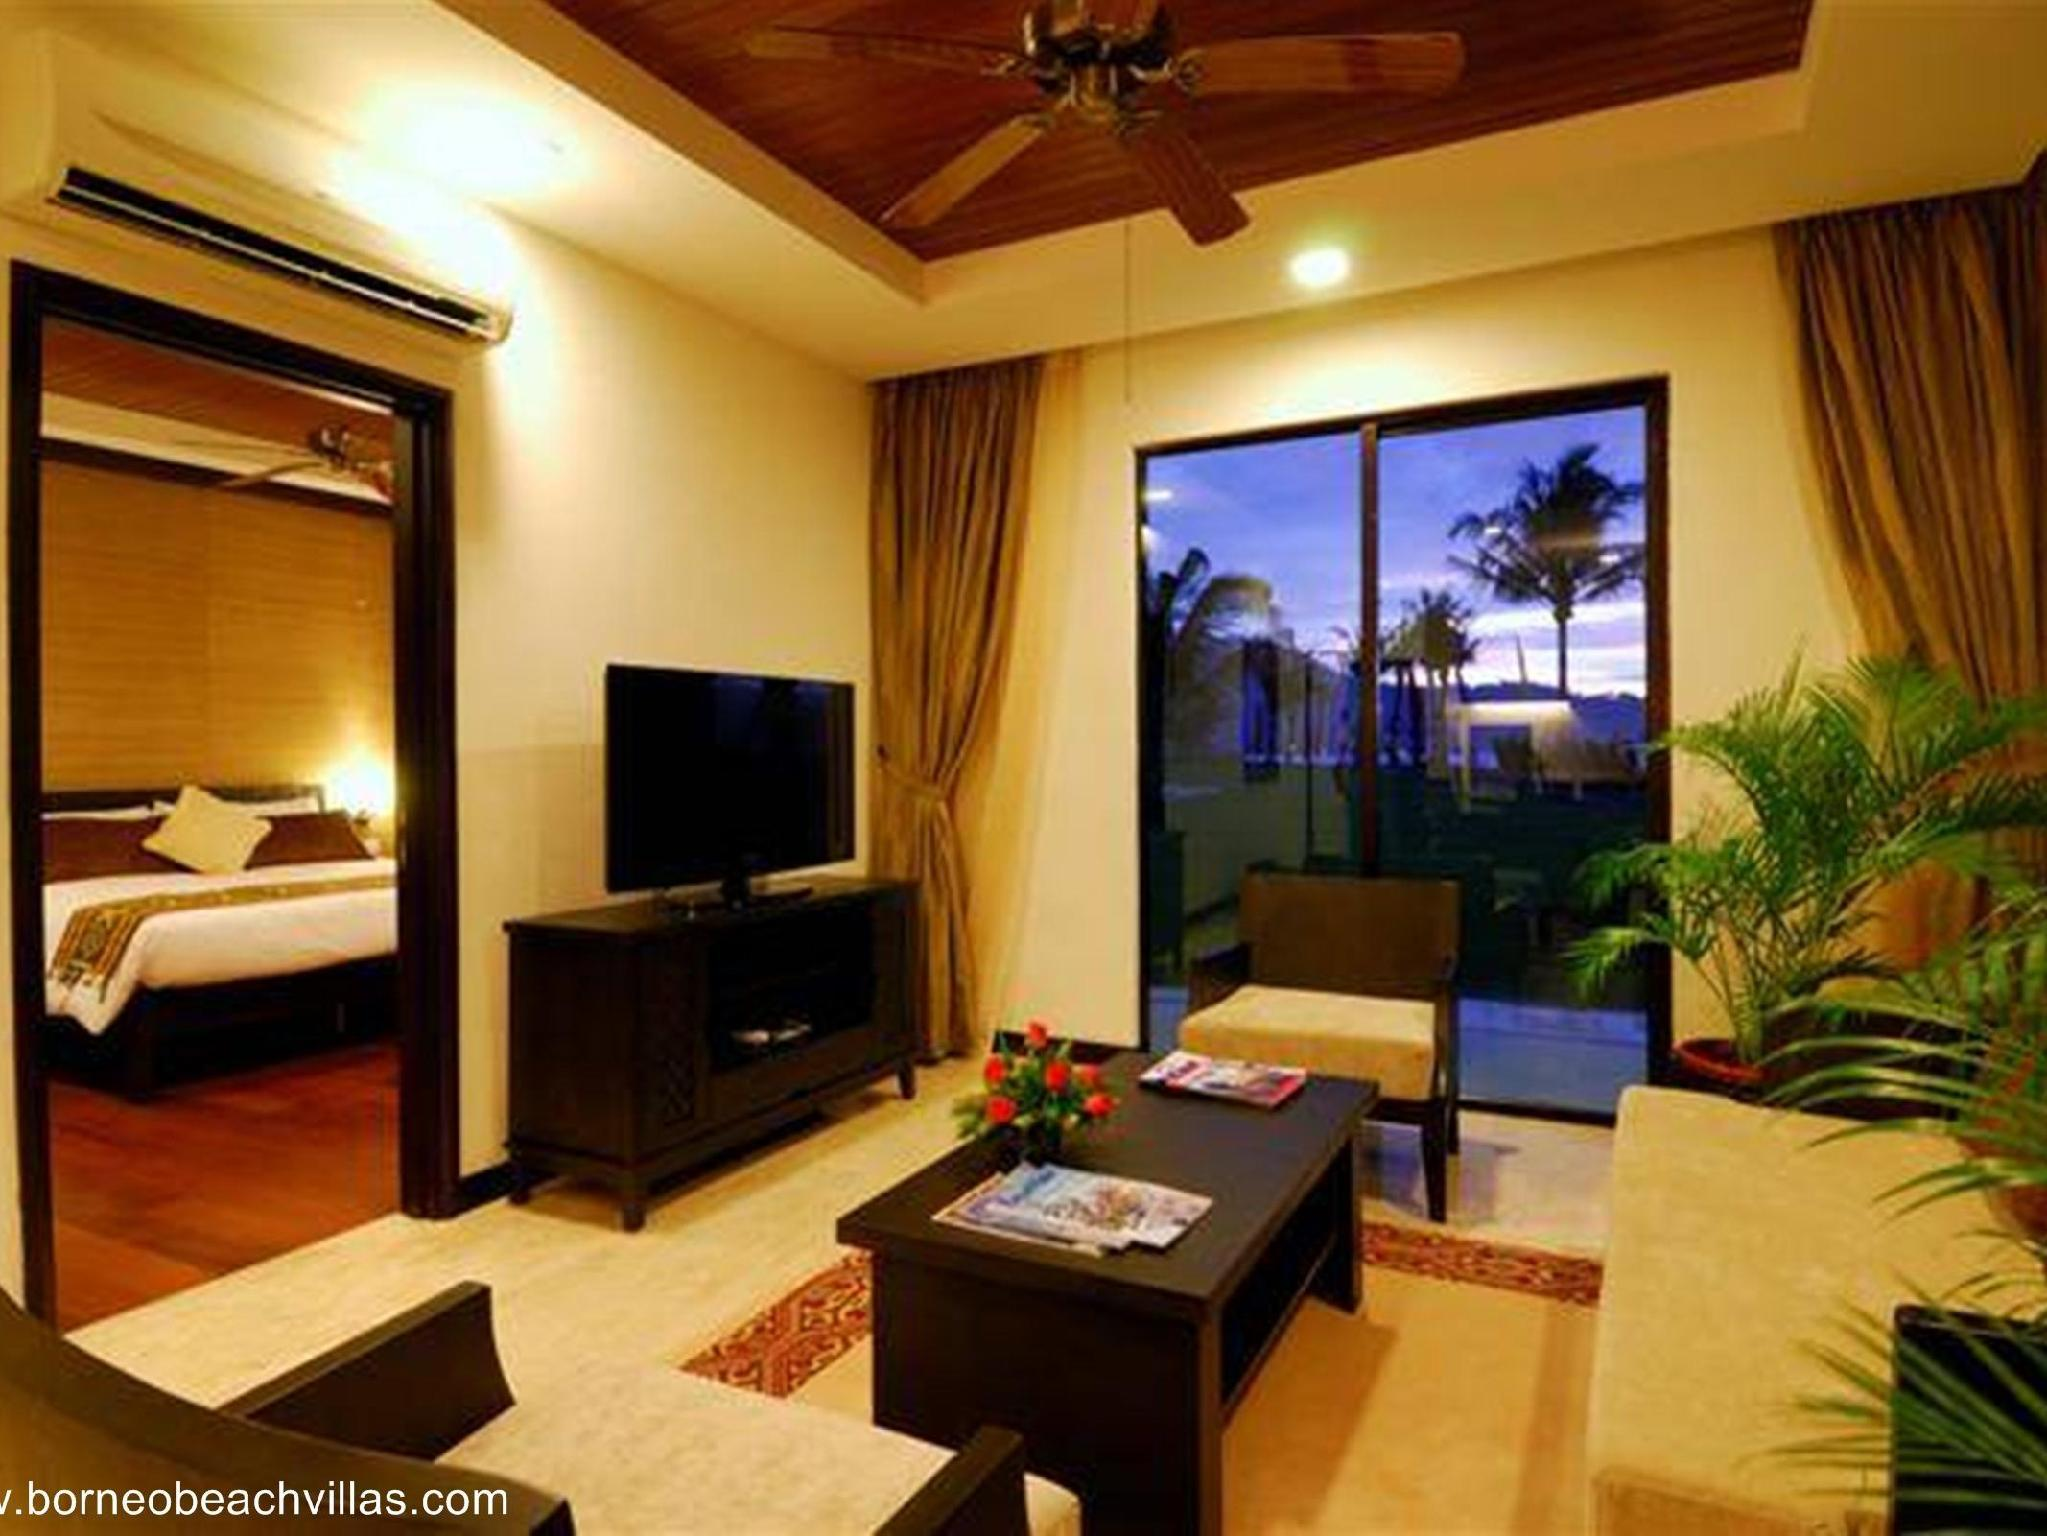 Borneo Beach Villas21